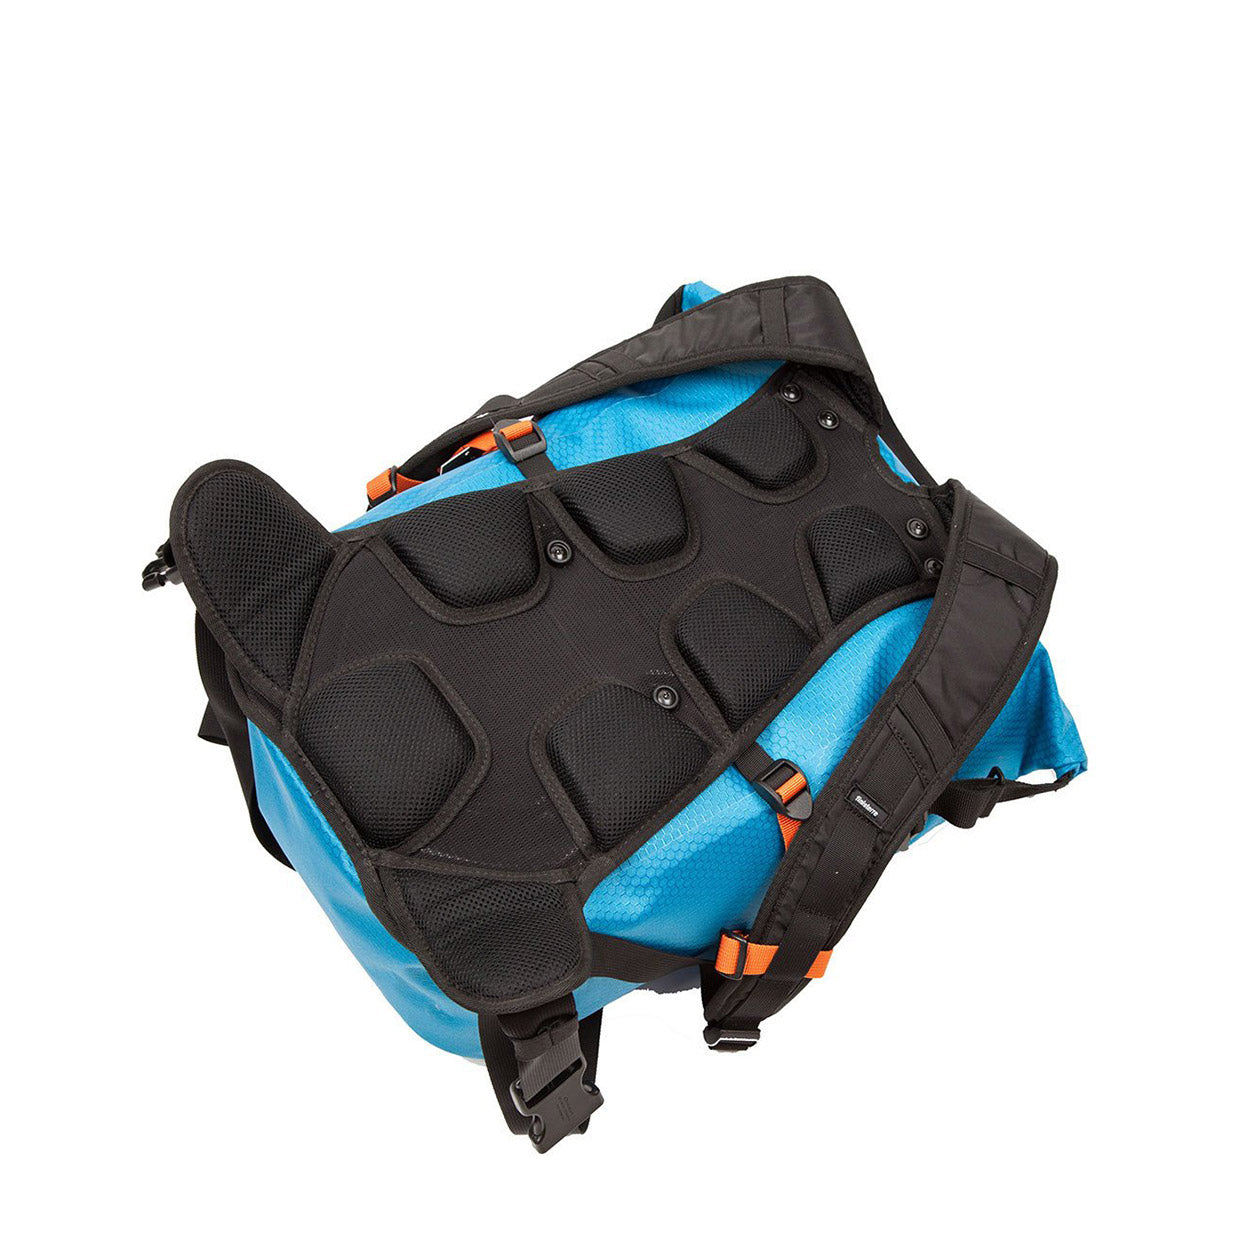 Finisterre x Ortlieb Waterproof Rucksack - Cerulean Blue Bag - CARTOCON